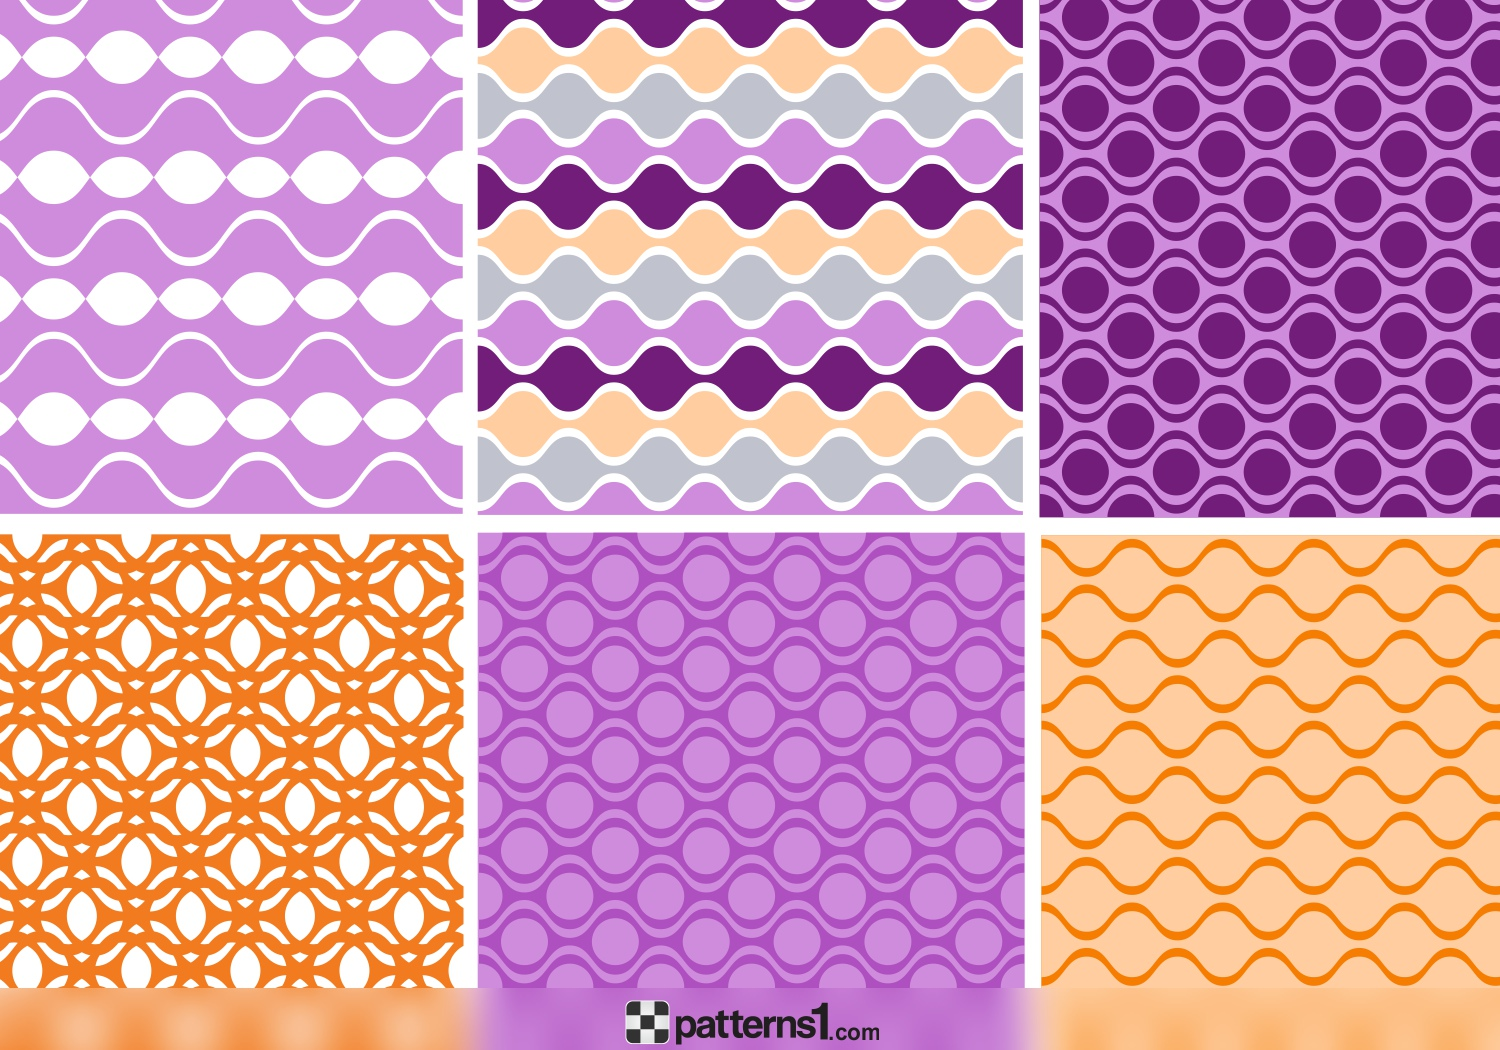 Patterns clipart picture download Vector Design of Geometric Patterns Clipart | Vector Pattern ... picture download